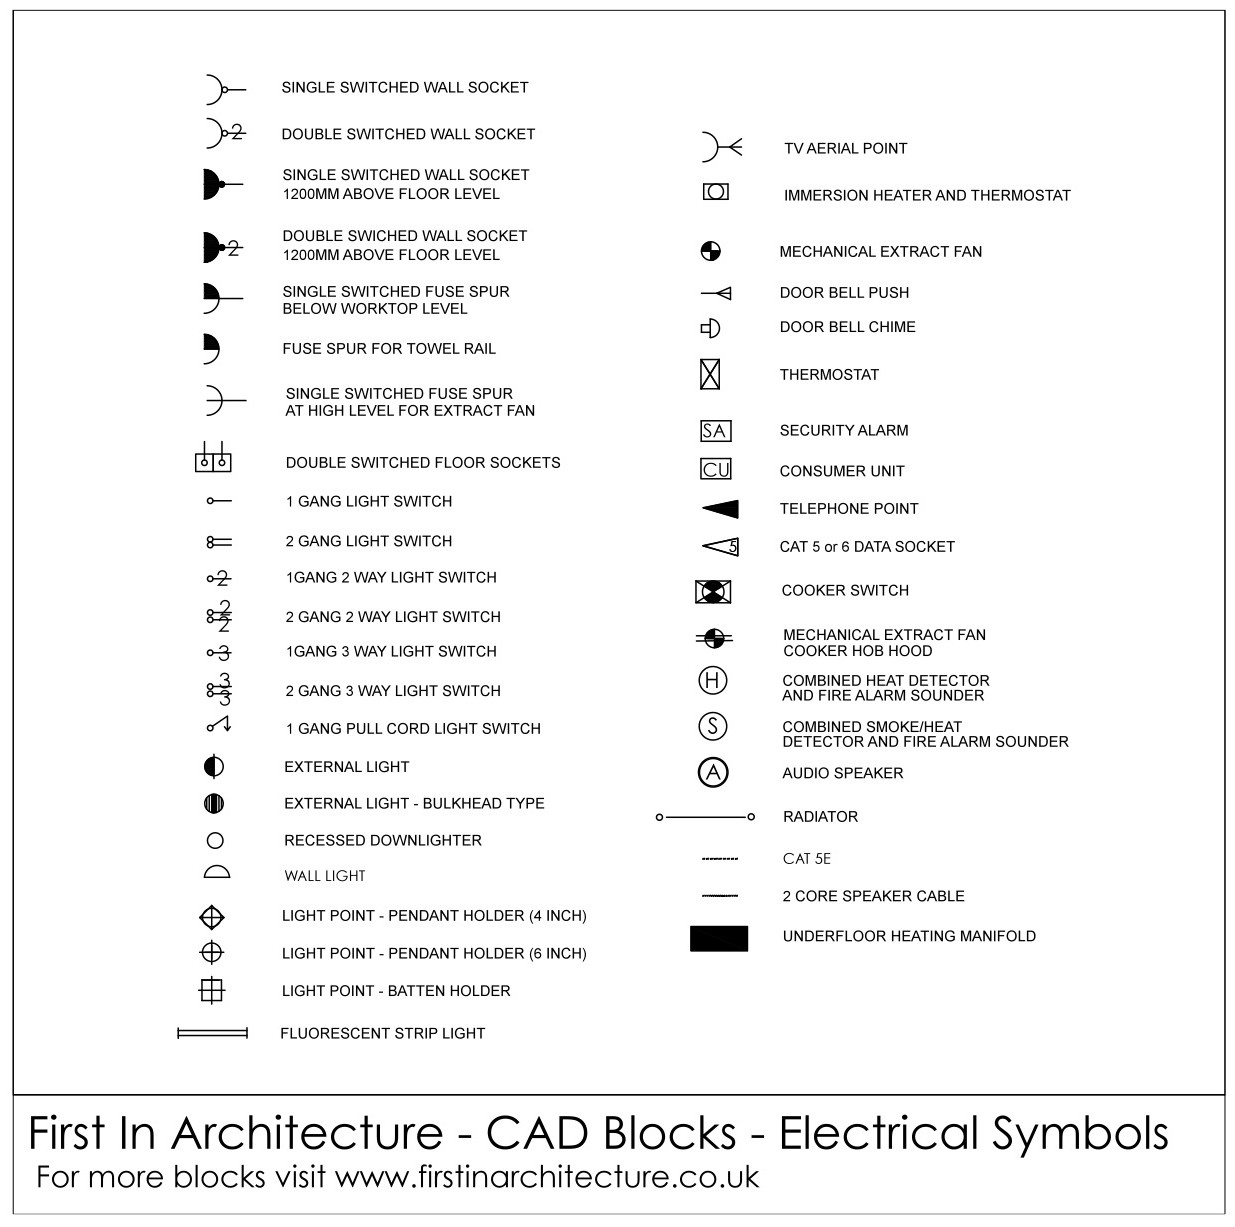 free cad blocks electrical symbols rh firstinarchitecture co uk Outlet Wiring 2-Way Light Switch Wiring